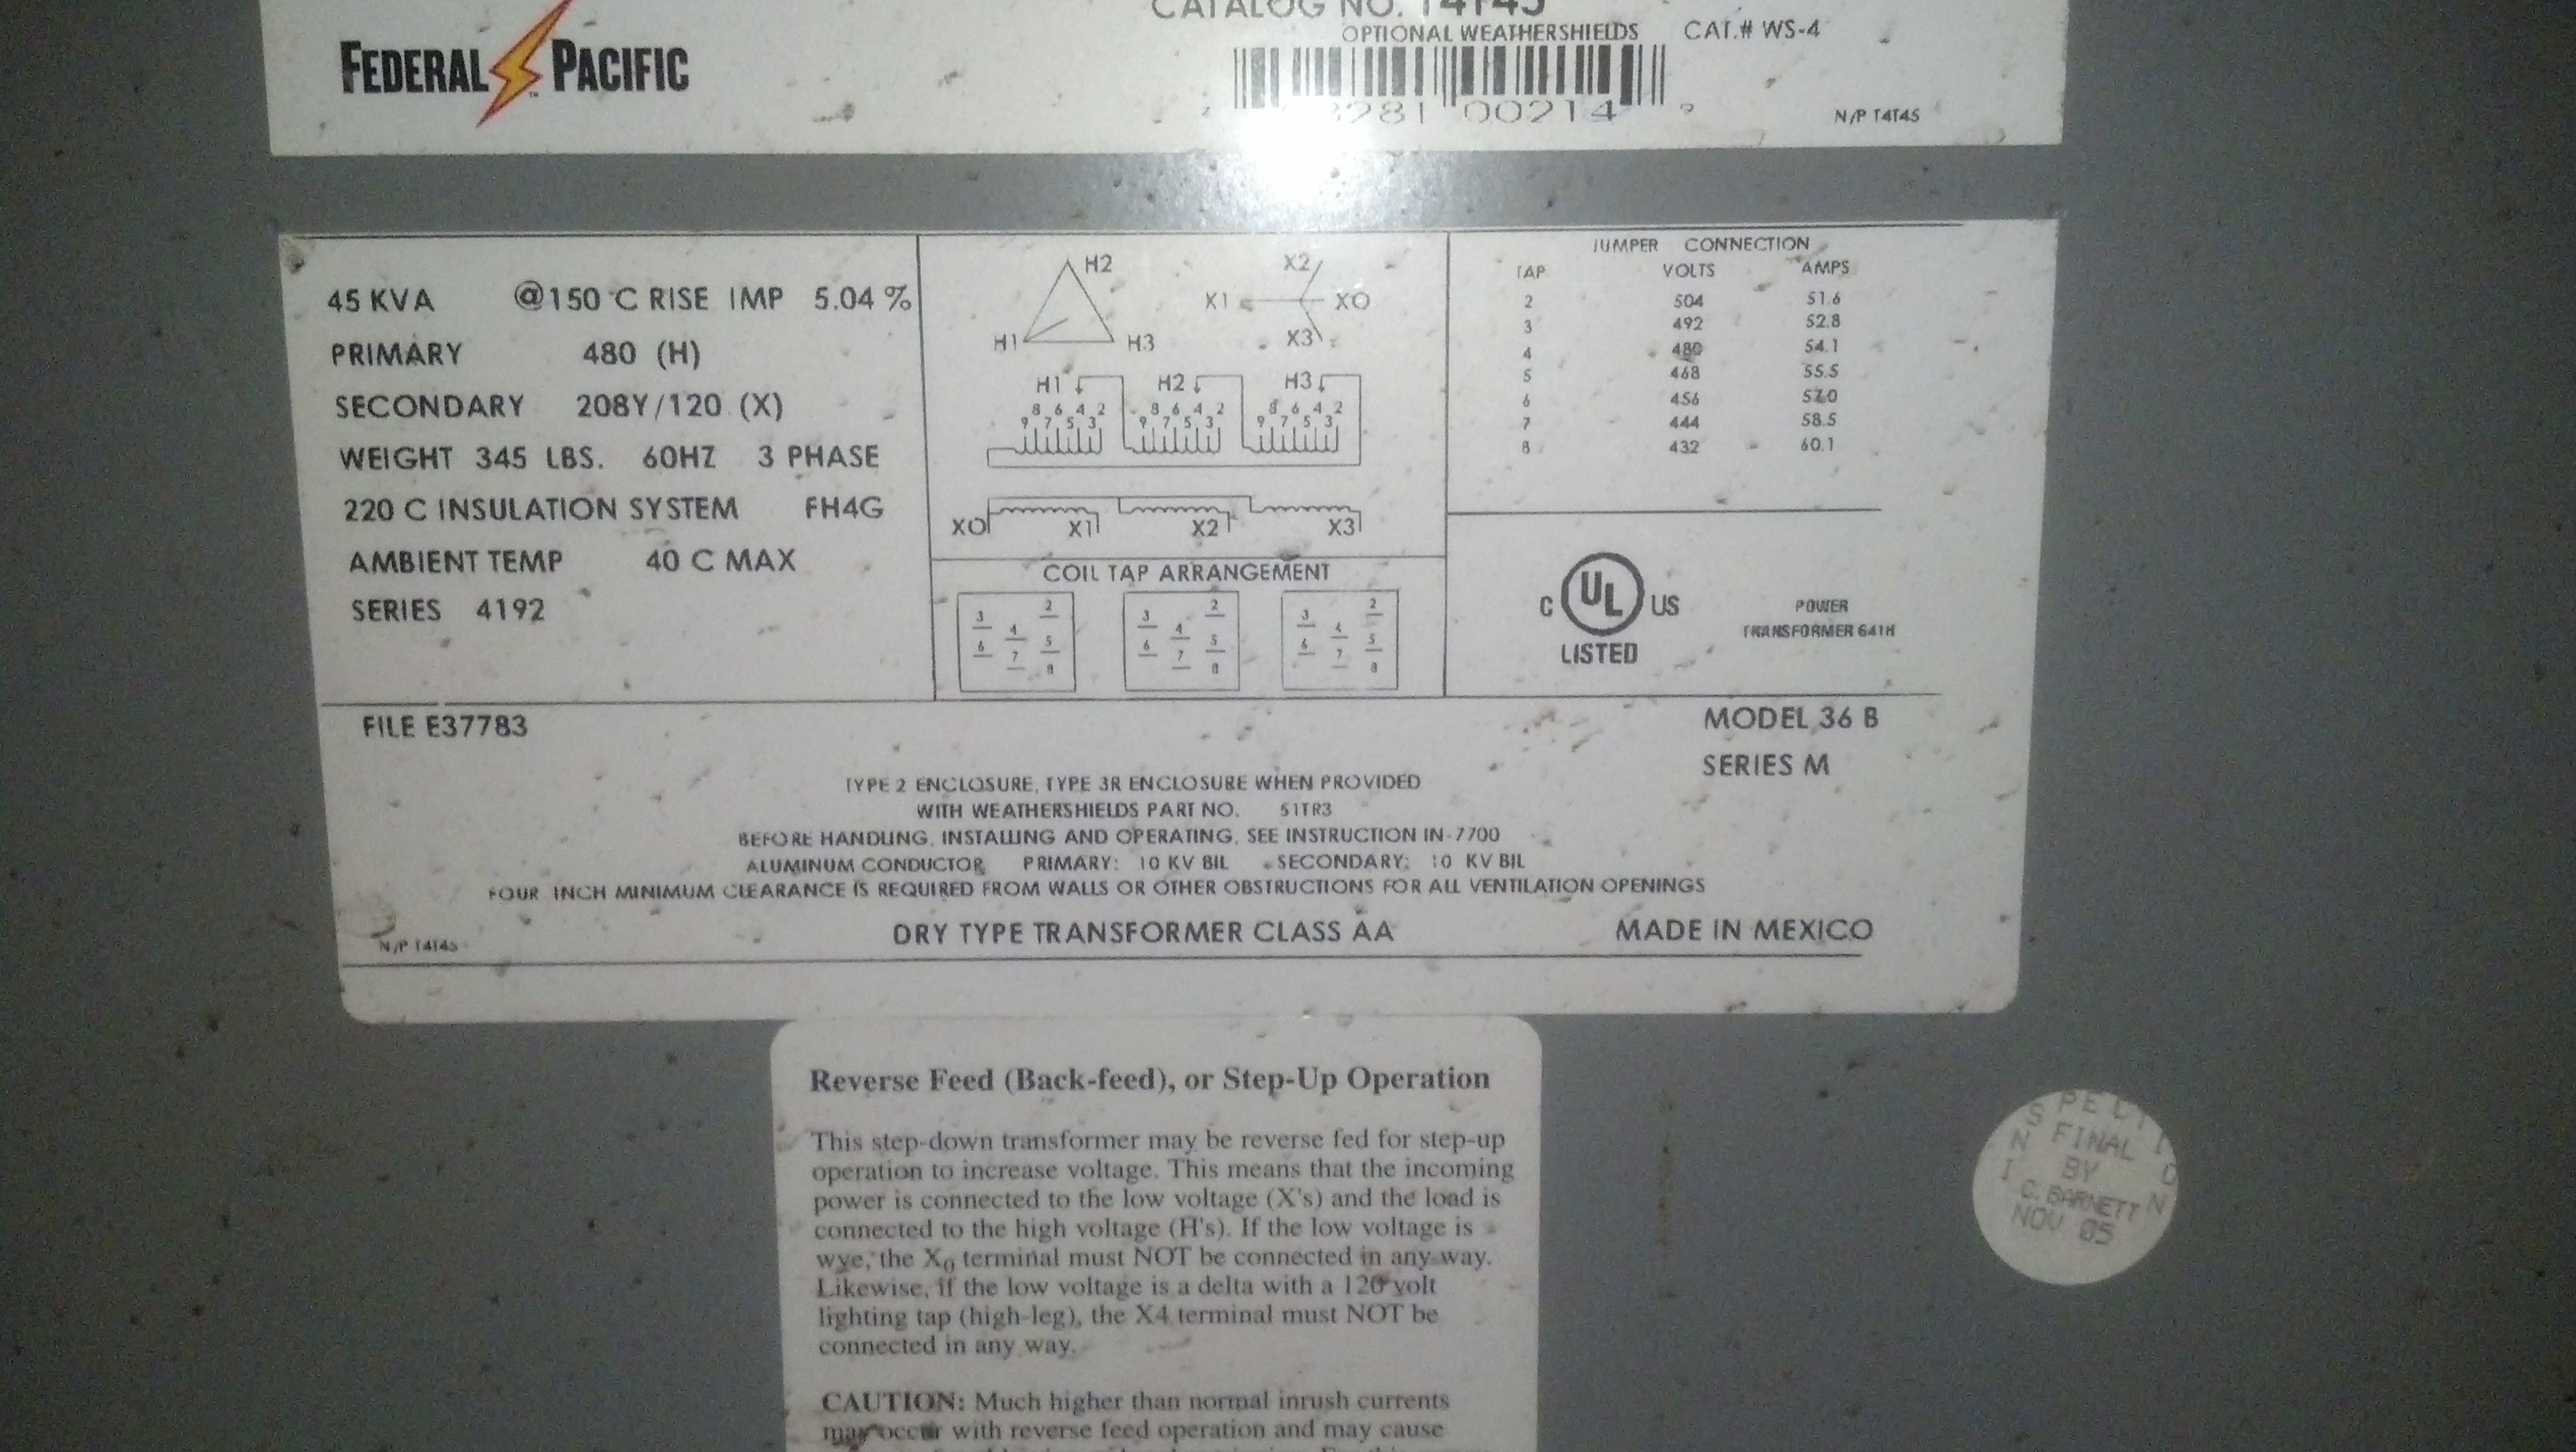 (1) PREOWNED FEDERAL PACIFIC TRANSFORMER,MODEL 45 KVA